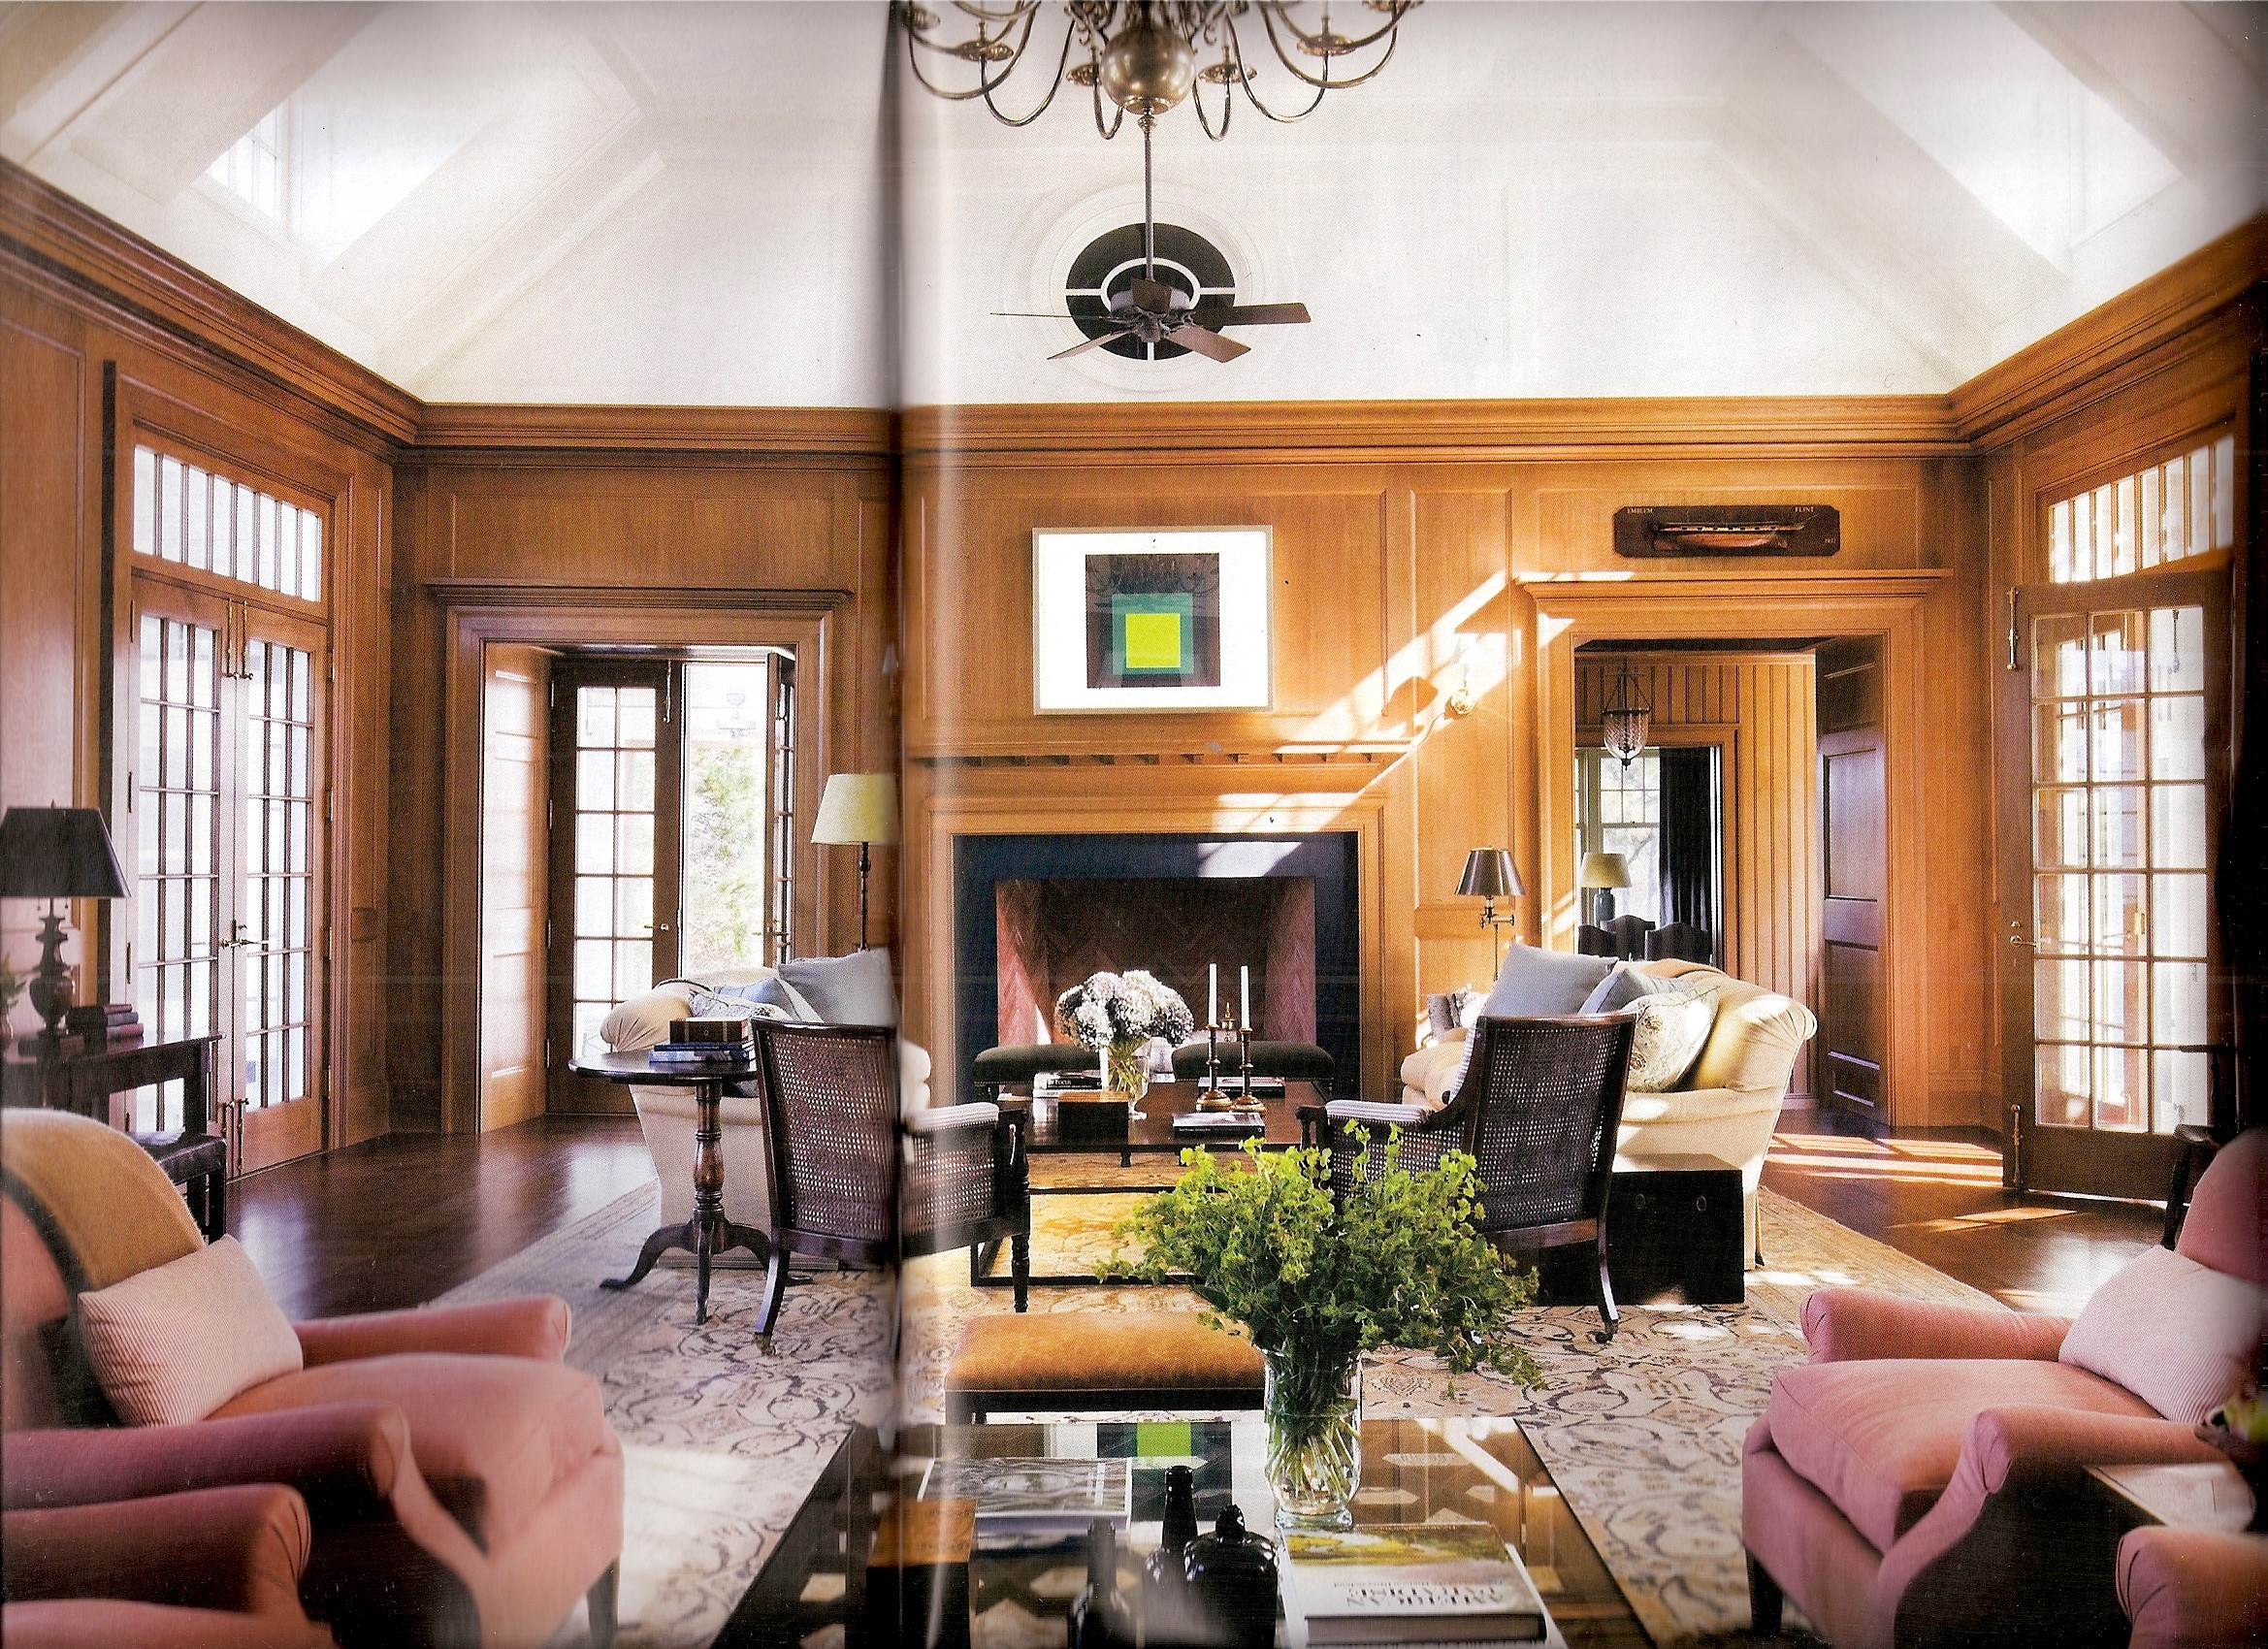 Architectural Digest, February 2011, p. 2